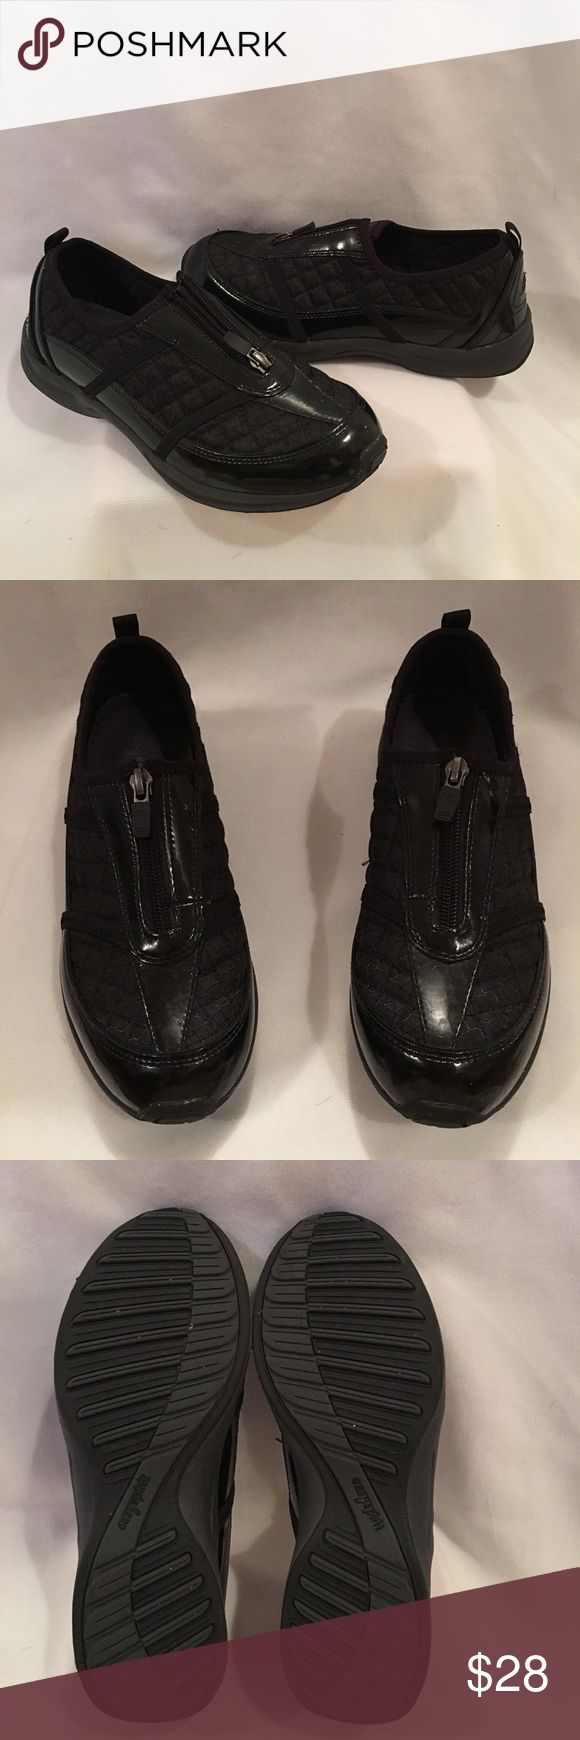 🆕Easy Spirit Amore black patent leather shoes New without tags or box Stylish comfortable Easy Spirit Amore Black Patent leather with quilted polyester walking shoe with zip top. Size 8 1/2 Easy Spirit Shoes Athletic Shoes